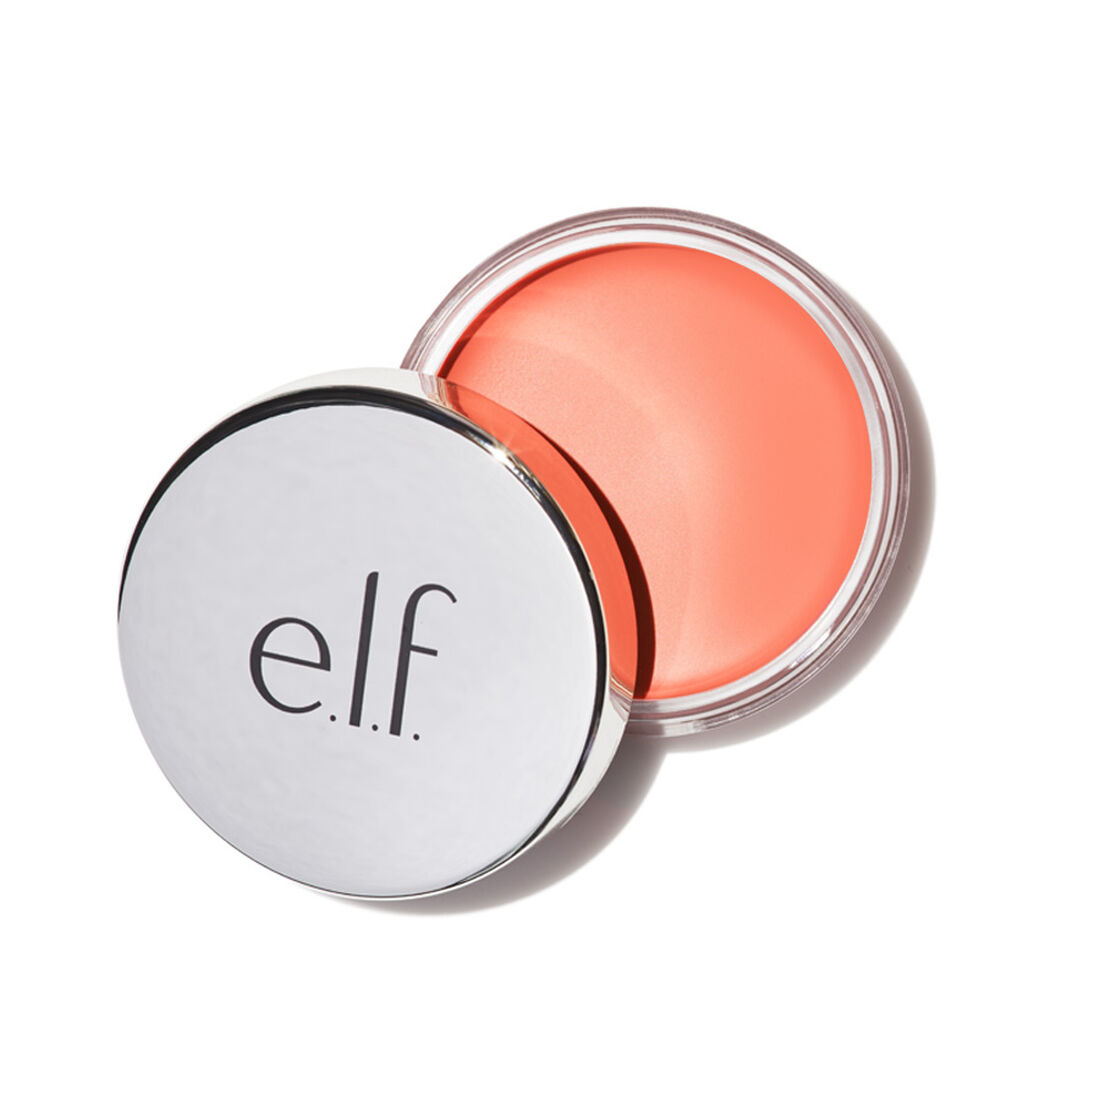 E.l.f Cosmetics - Beautifully Bare Cheeky Glow